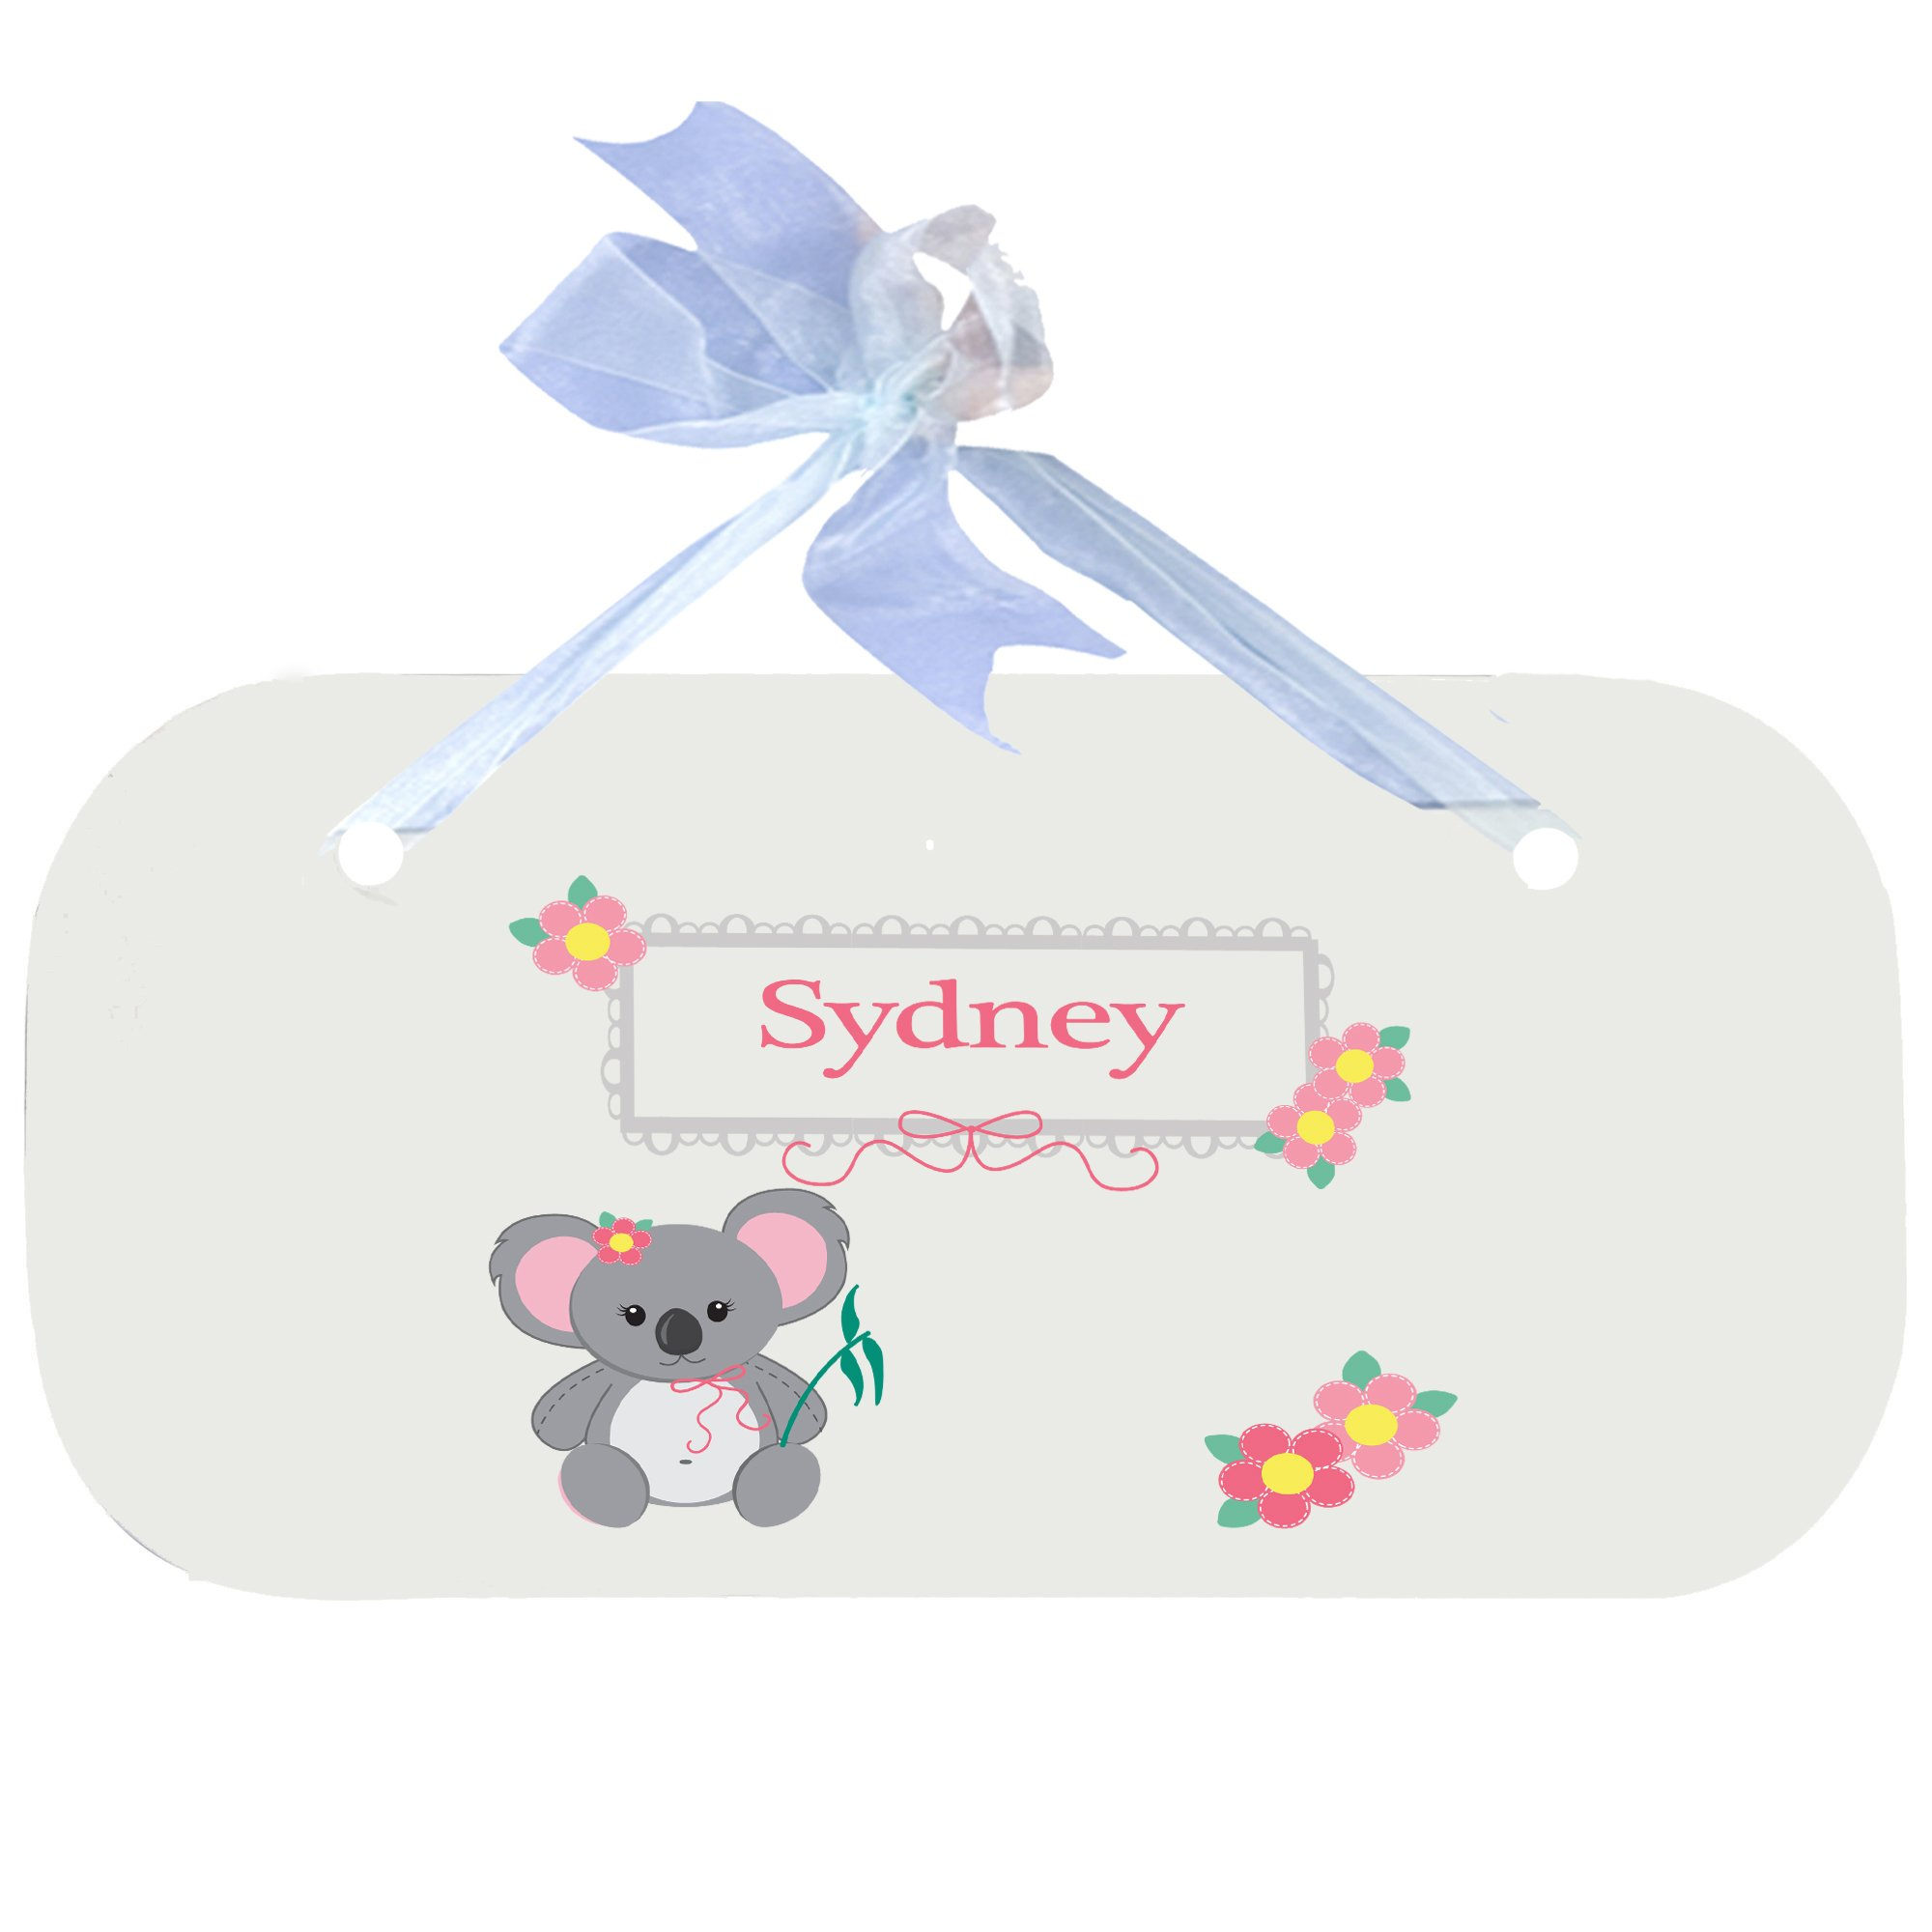 Personalized Koala Bear Nursery Door Hanger Plaque with Blue Ribbon